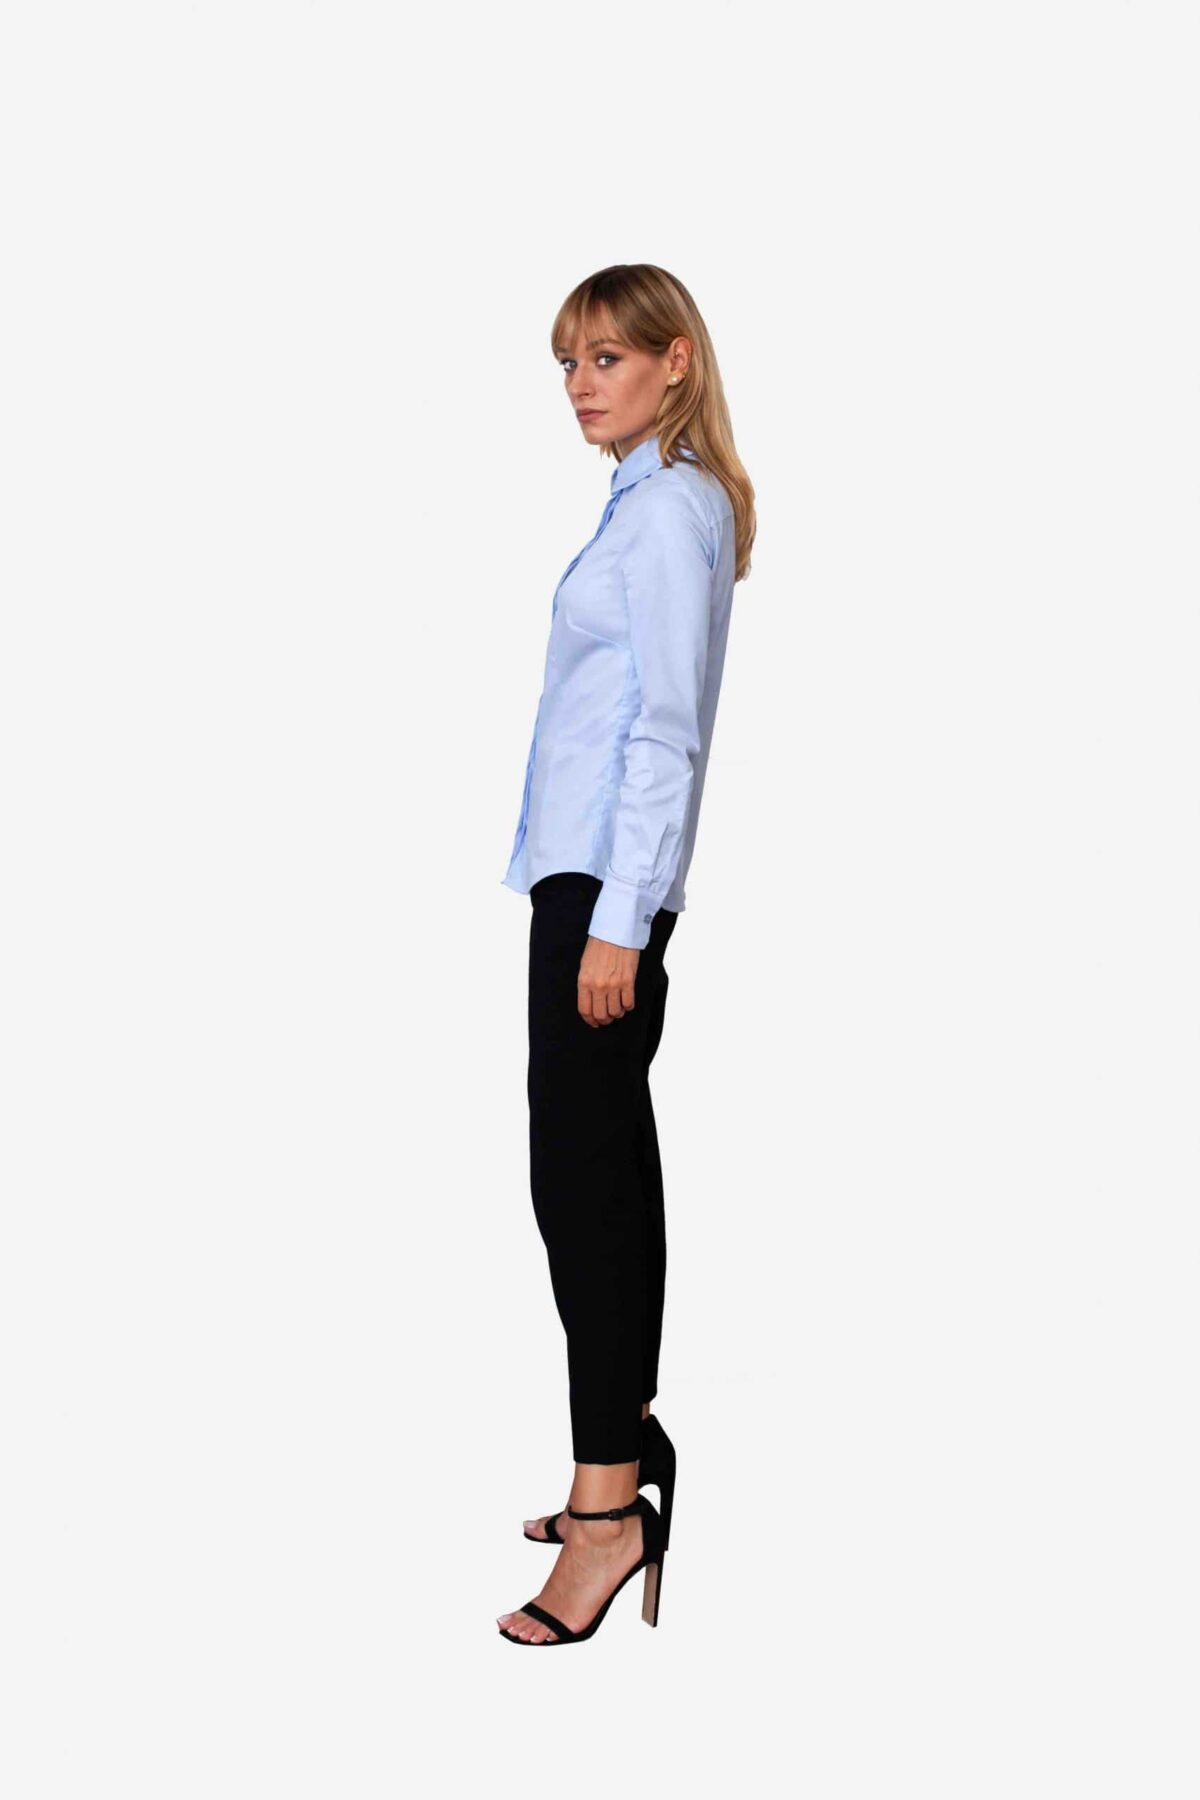 Bluse Ella von SANOGE. Klassische Business Bluse in blau mit New York Kent Kragen. Slim Fit, figurbetont. Made in Germany. Designer Label SANOGE